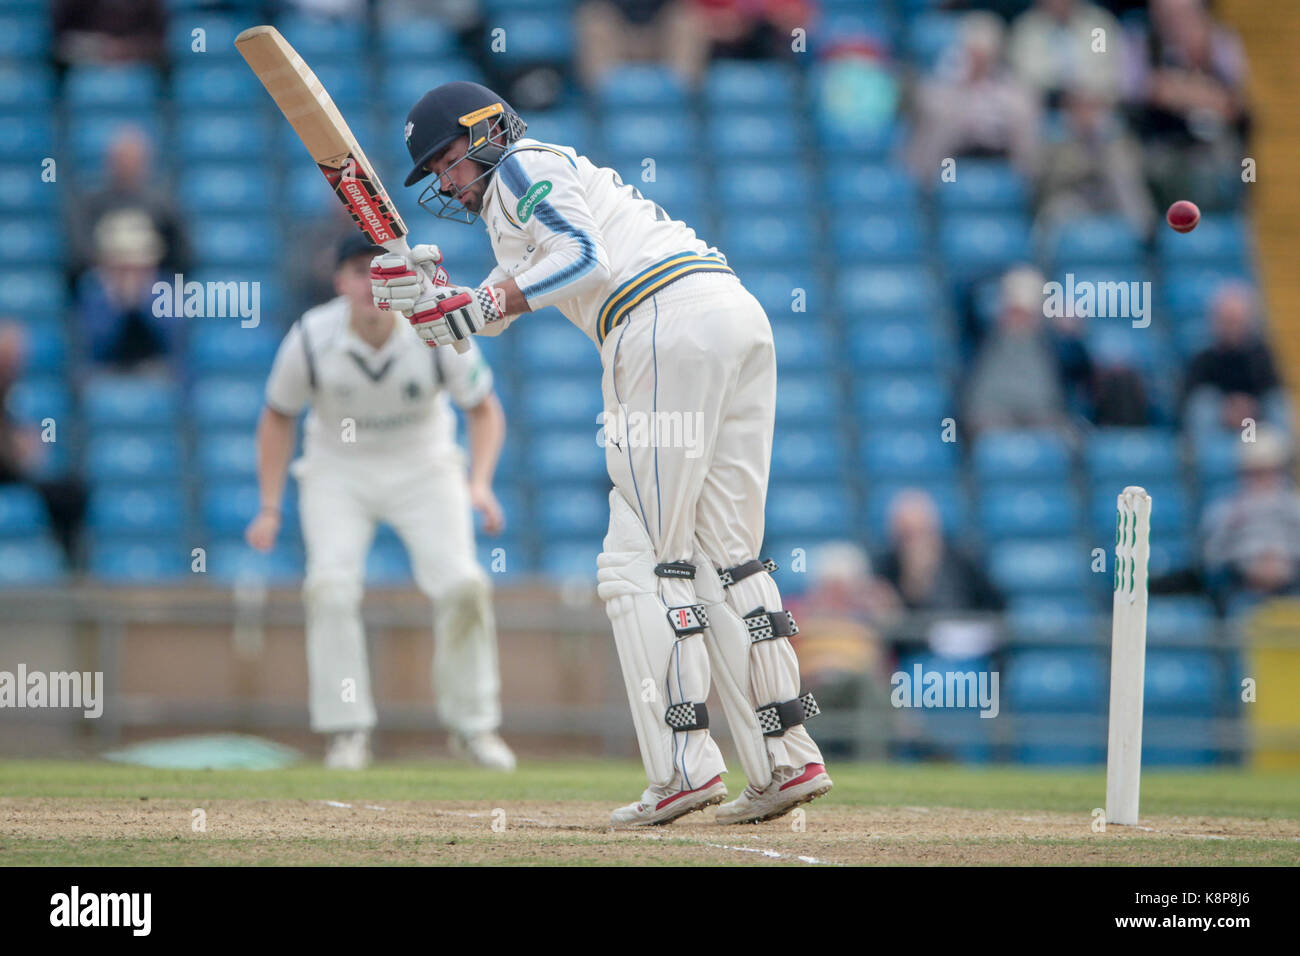 Leeds, UK. 20th Sep, 2017. Jack Leaning (Yorkshire CCC) guides a ball down leg side Yorkshire CCC v Warwickshire - Stock Image